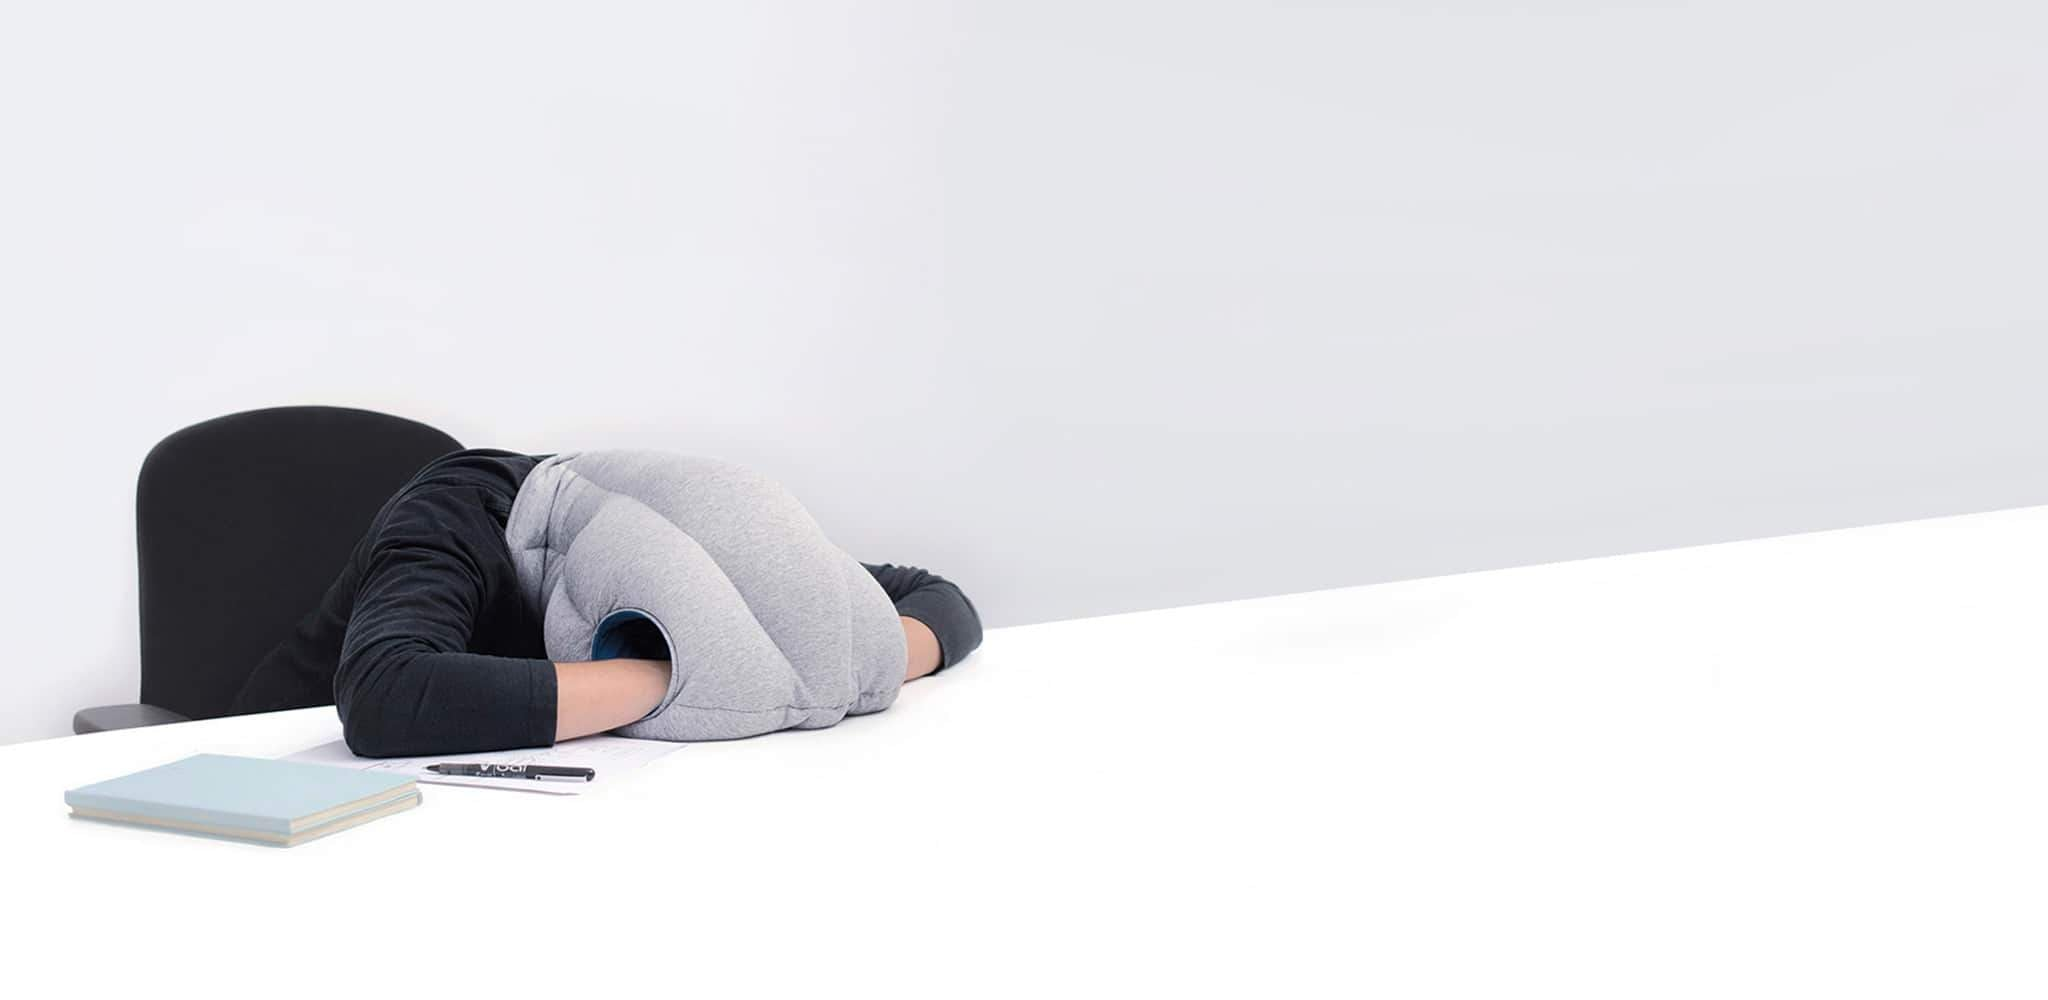 Person sleeping with their head laid forward on their desk while wearing the OstrichPillow Original.